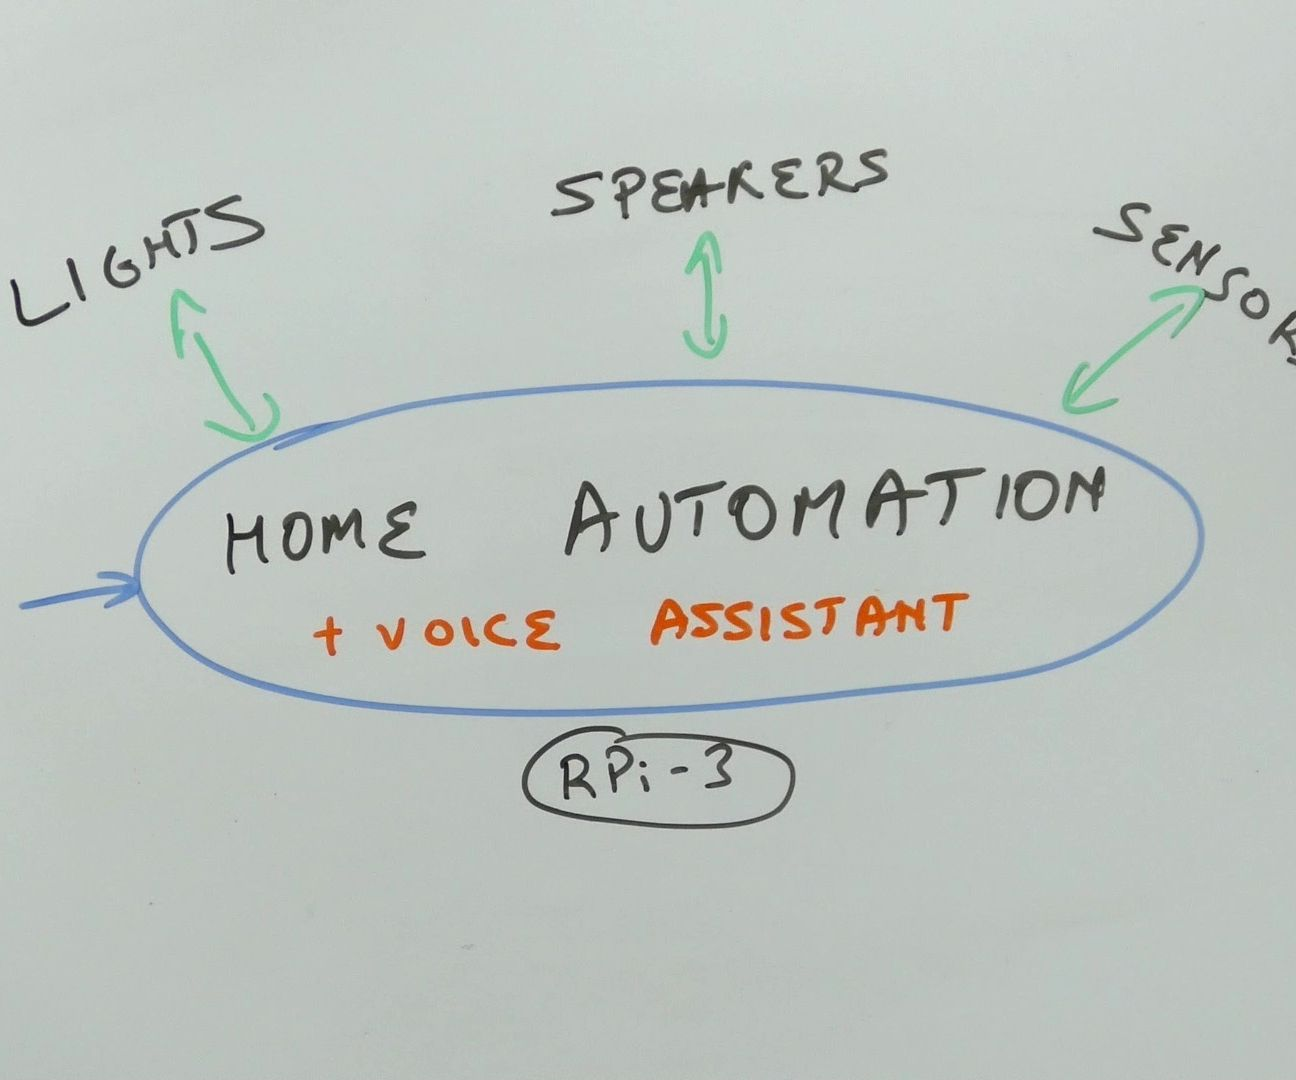 Getting Started With Home Automation: Installing Home Assistant